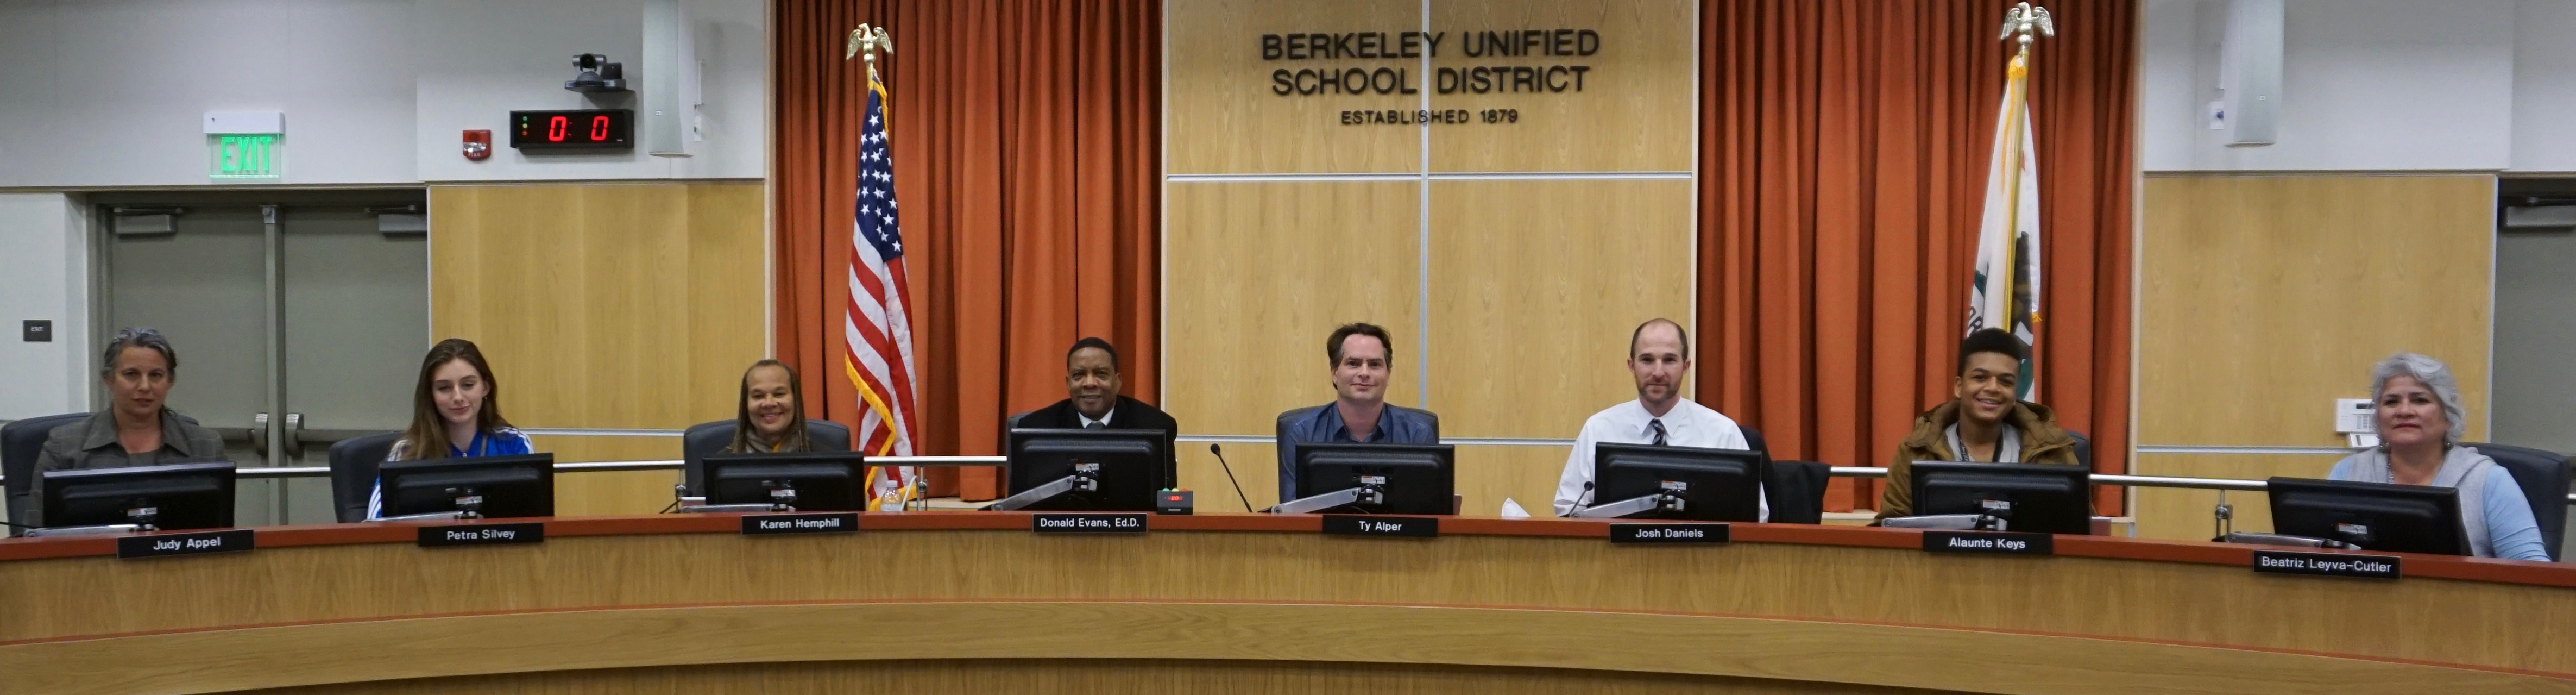 BUSD Board of Education 2016-17